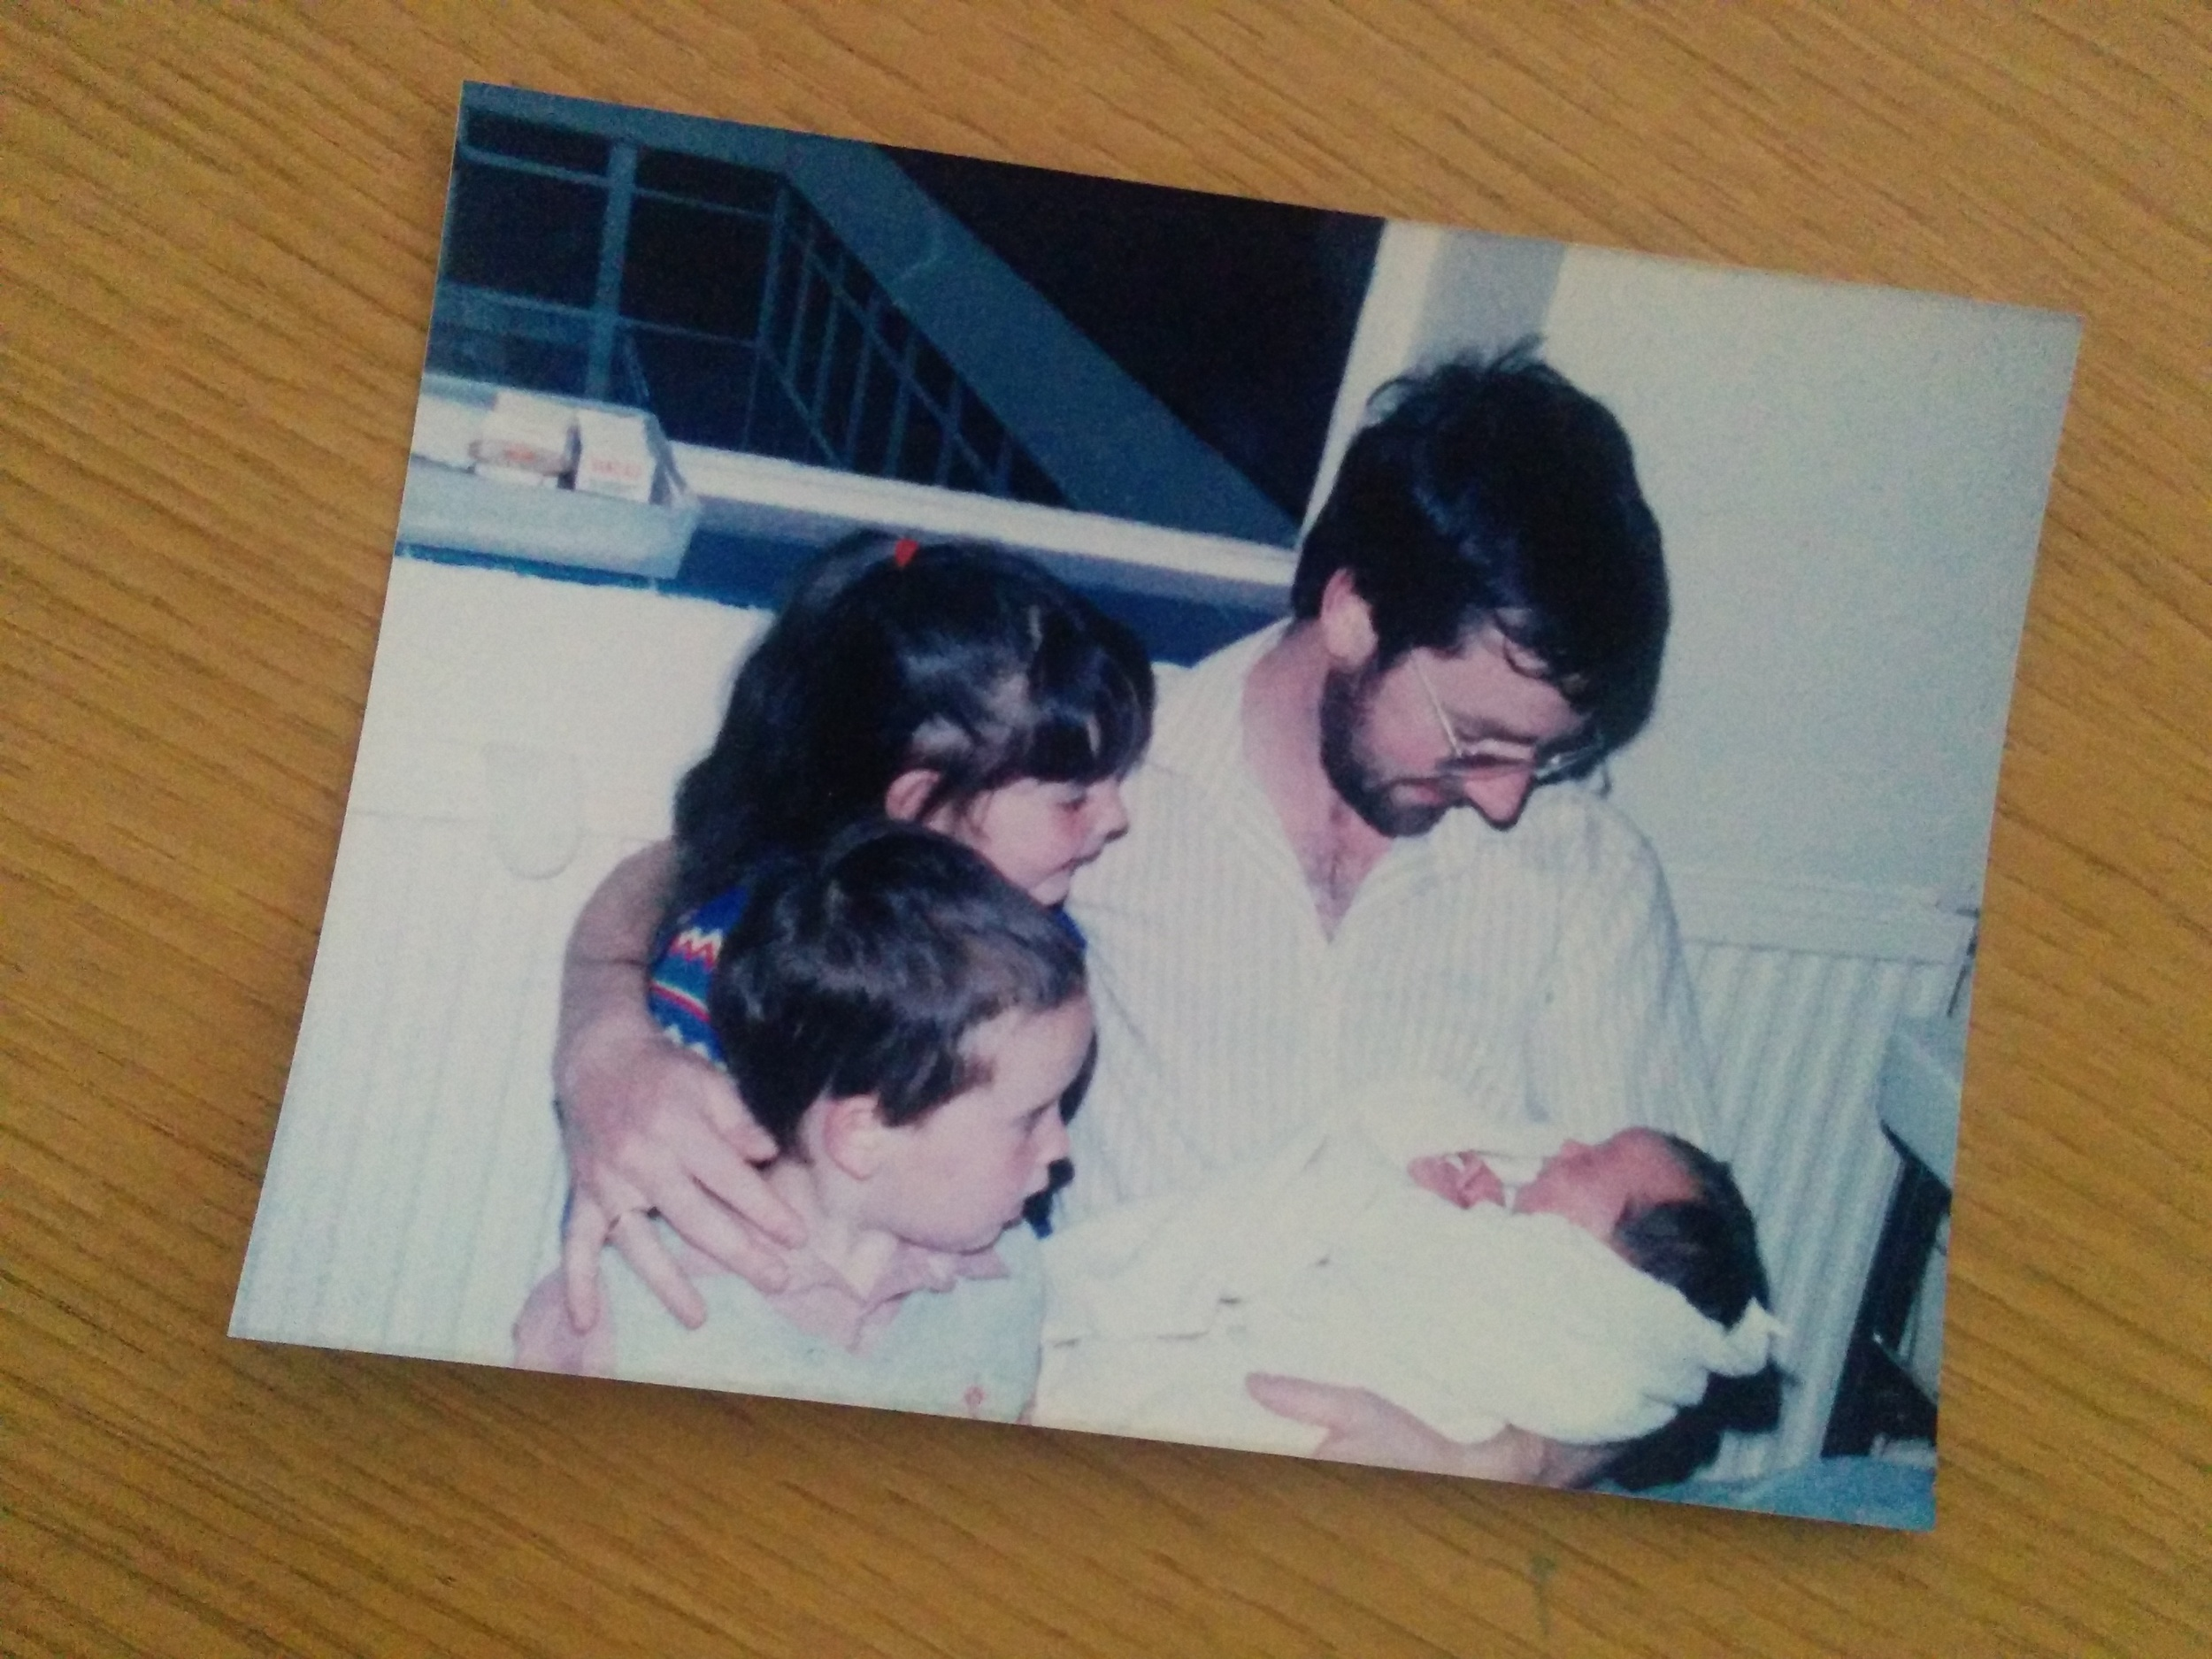 my dad, sister & brother holding me in the hospital right after i'd been born #existinphotos